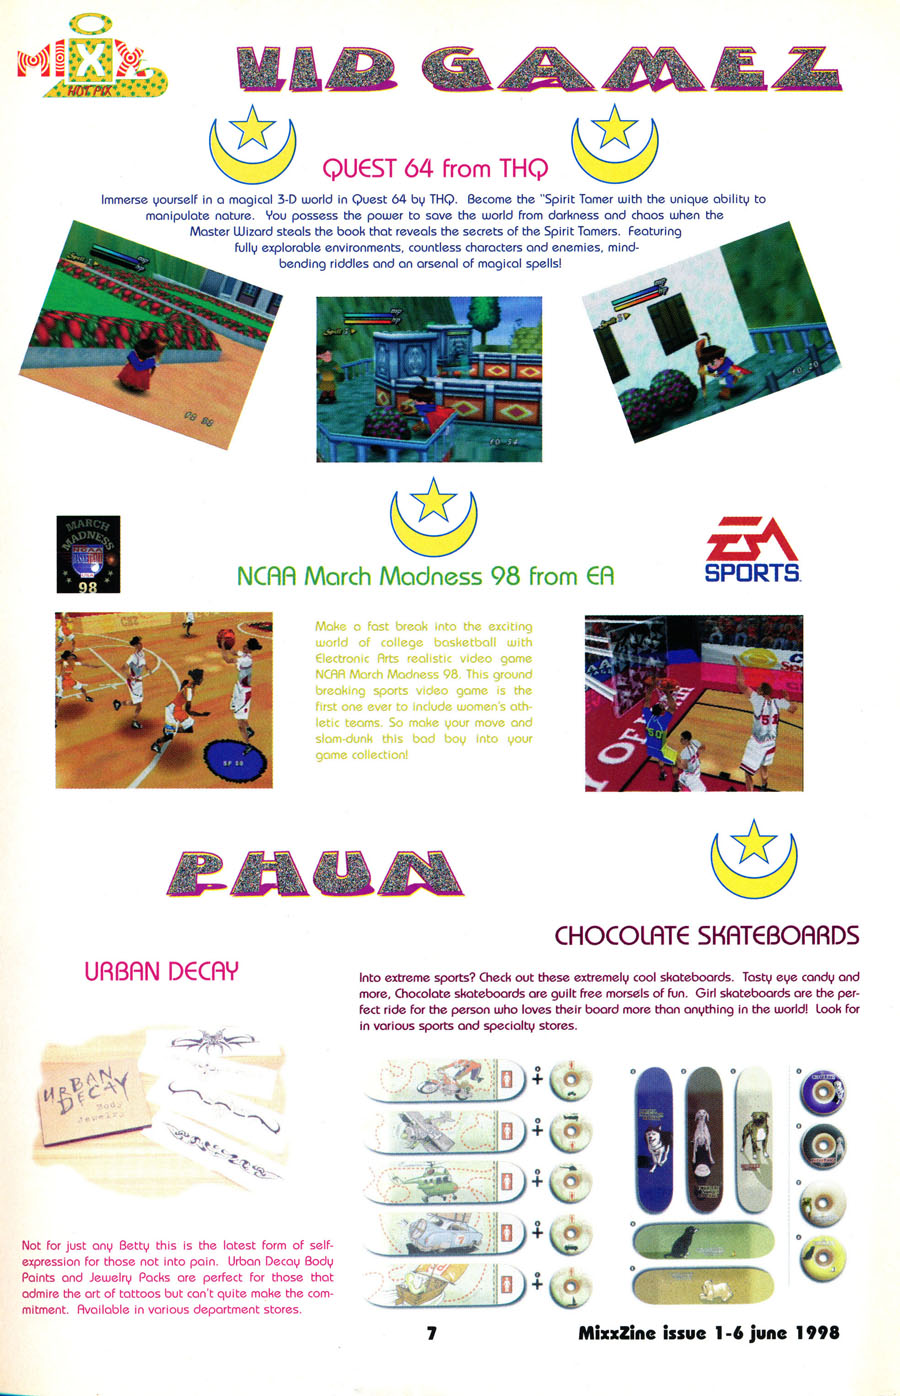 mixx-zine-video-games-products